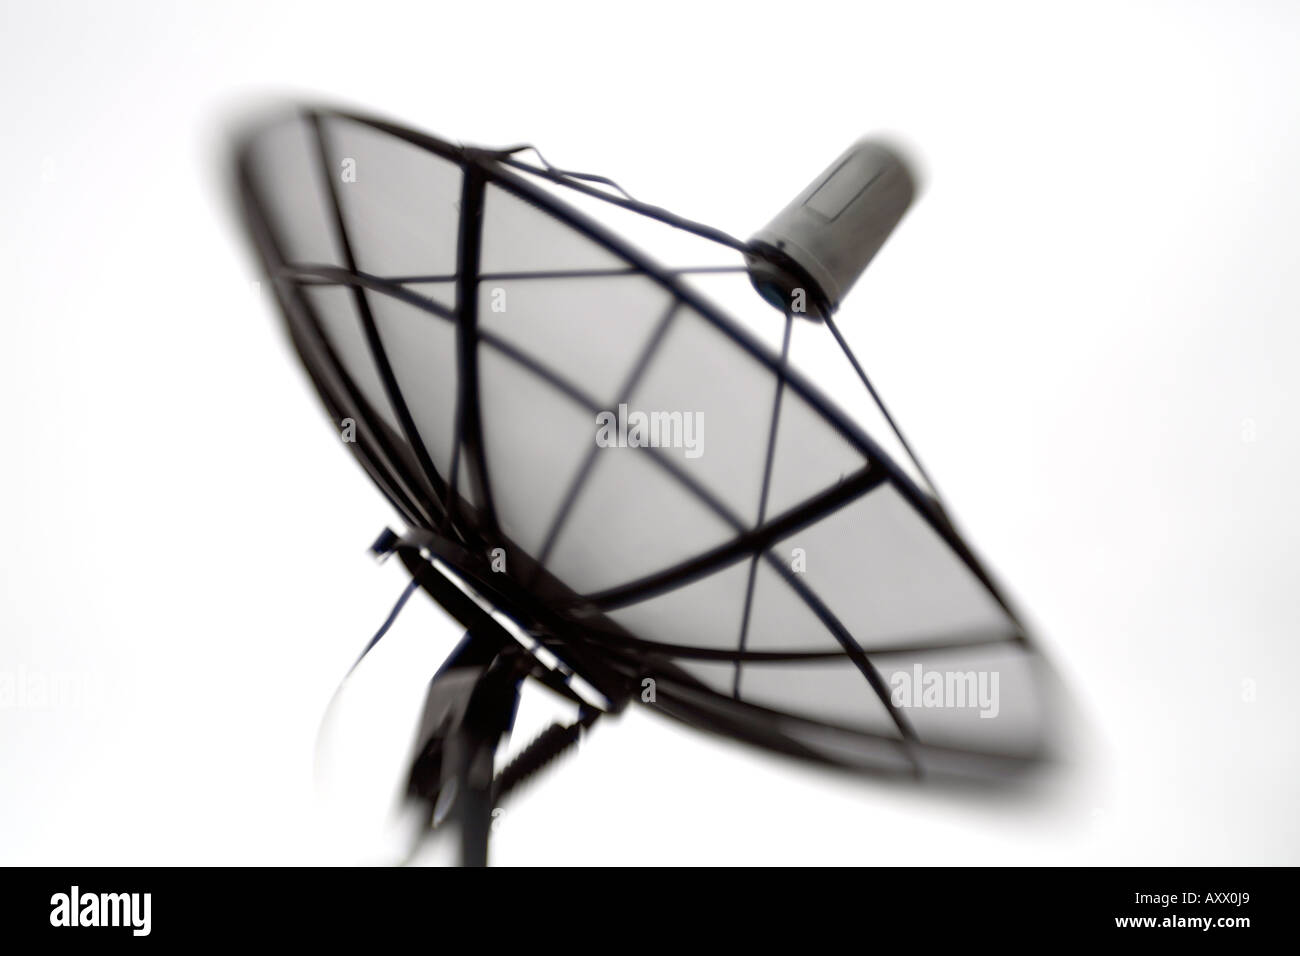 antenne parabolique banque d'images, photo stock: 9673256 - alamy